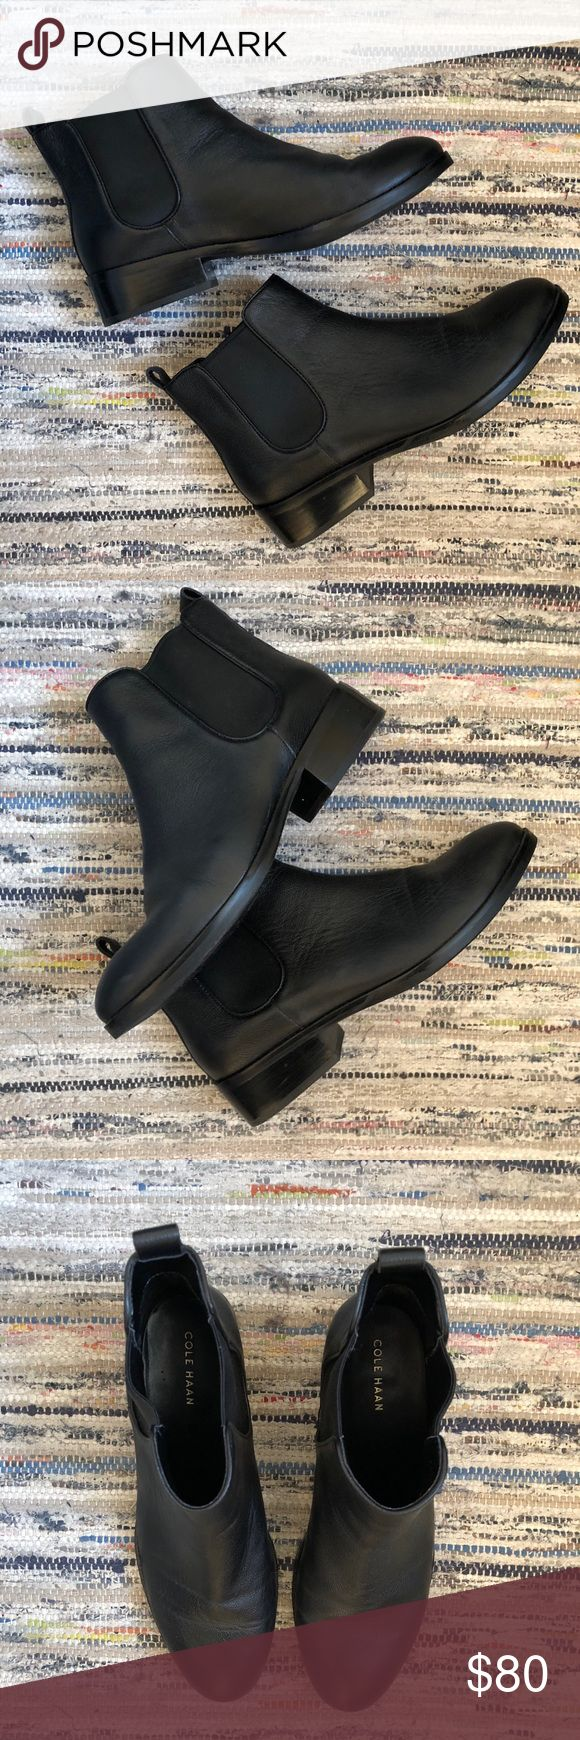 Cole Haan Landsman black leather Chelsea boots Cole Haan women's leather black Chelsea booties   Size 8   Never been worn!!   The mark on the back of the shoe is water (I wiped the shoes before taking a picture)   Amazing boots for spring and fall and are a staple city style   No trades Cole Haan Shoes Ankle Boots & Booties